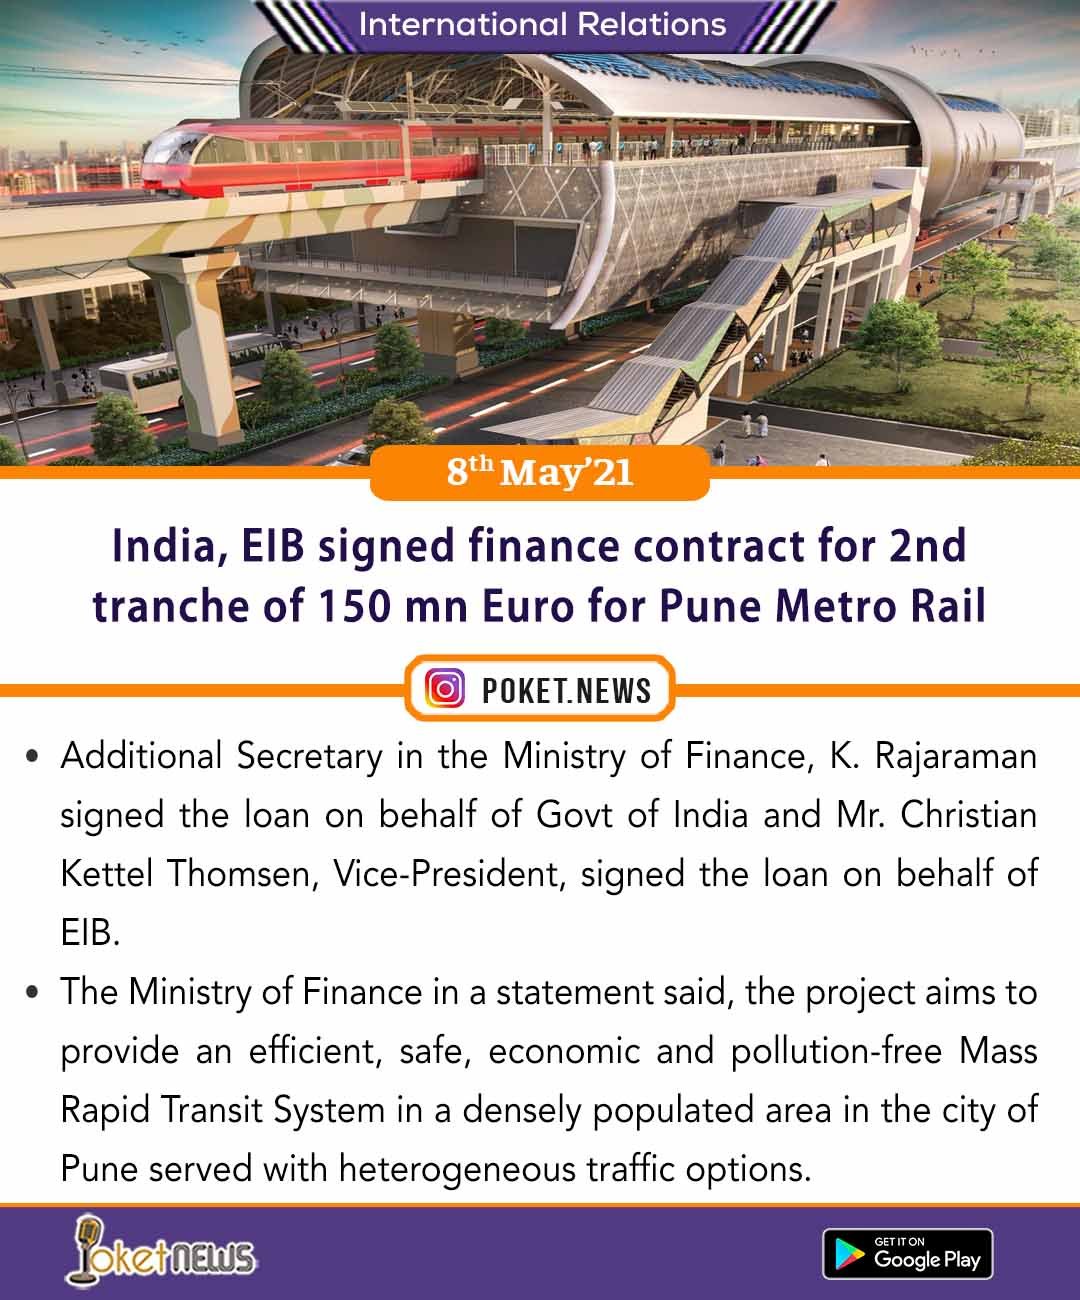 India, EIB signed finance contract for 2nd tranche of 150 mn Euro for Pune Metro Rail